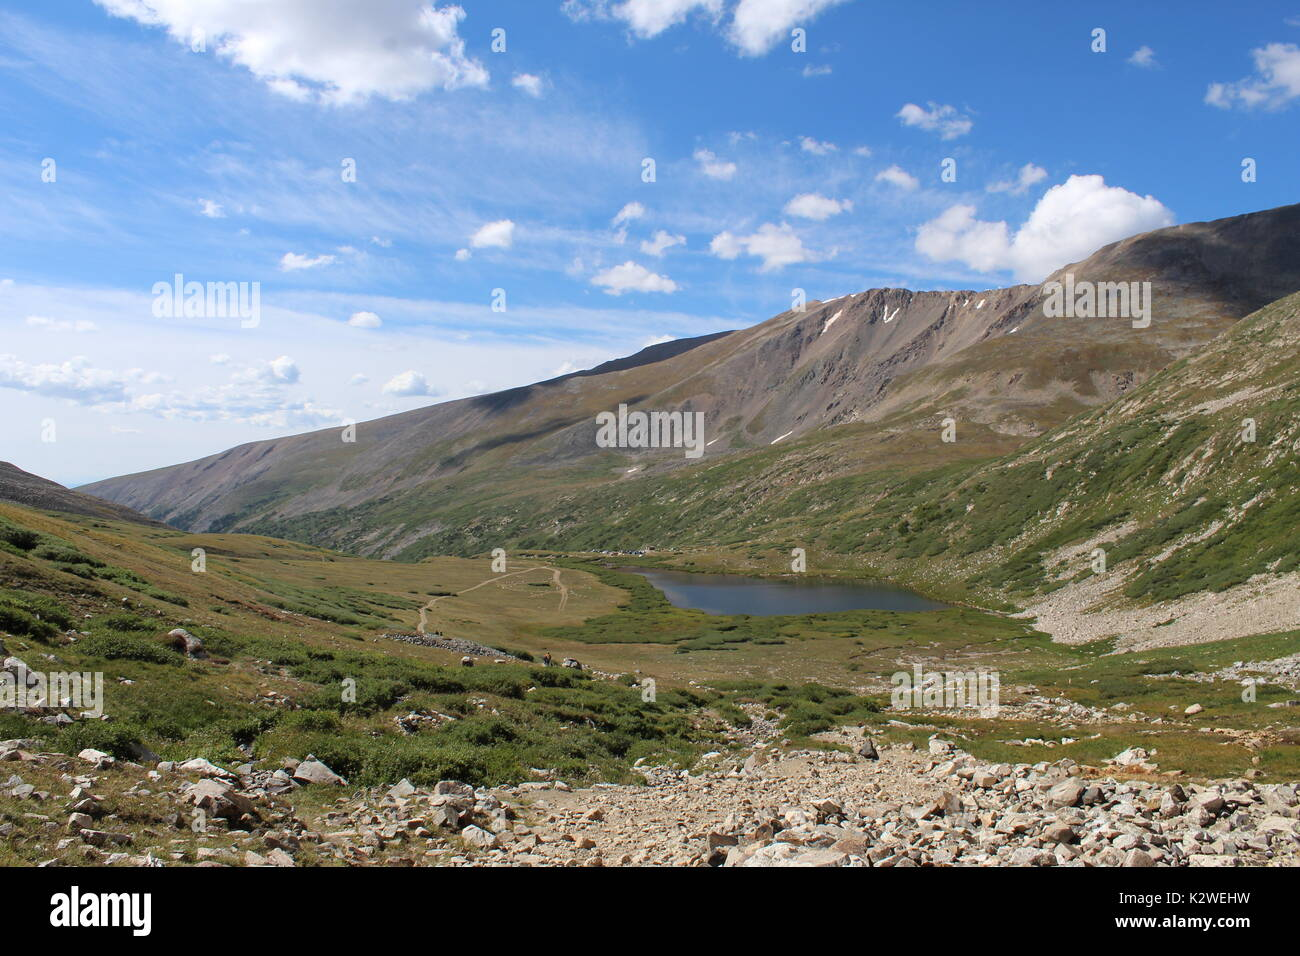 Kite Lake as seen from the east slope trail of Mt. Democrat in the Mosquito Range of the Rocky Mountains, near the towns of Alma and Fairplay, CO - Stock Image